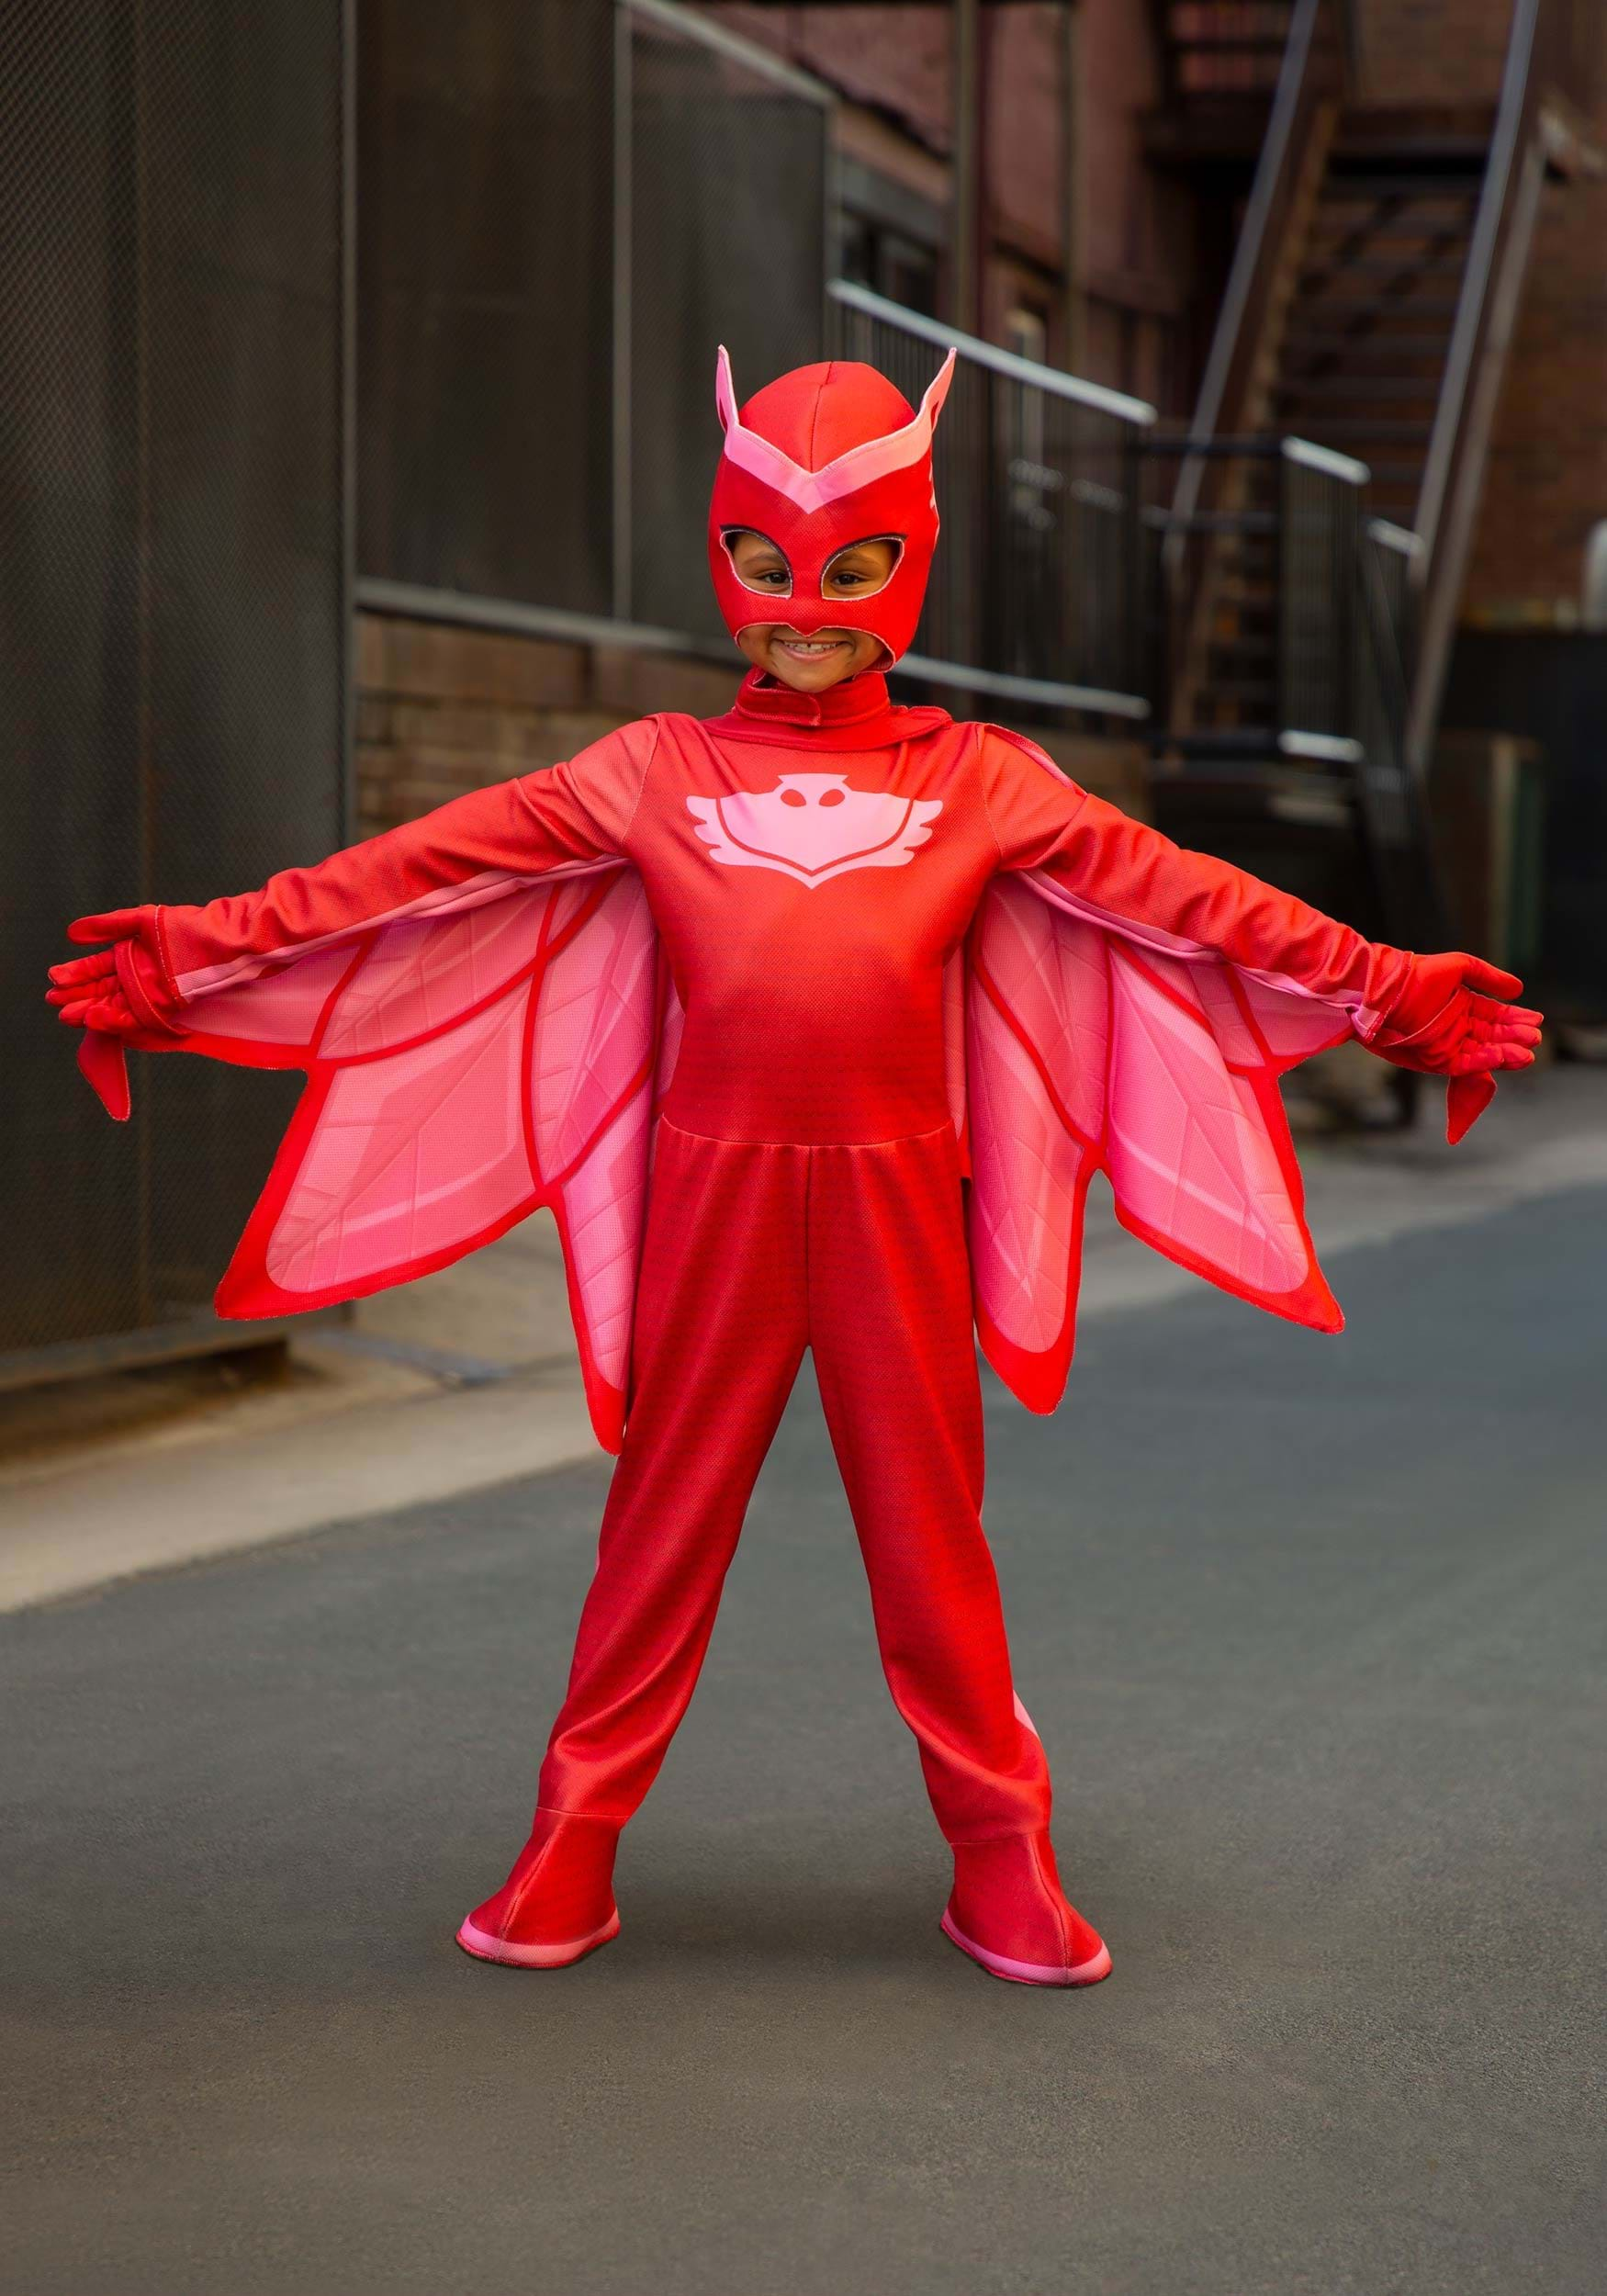 b0471c01 Kids Deluxe Owlette Costume from PJ Masks